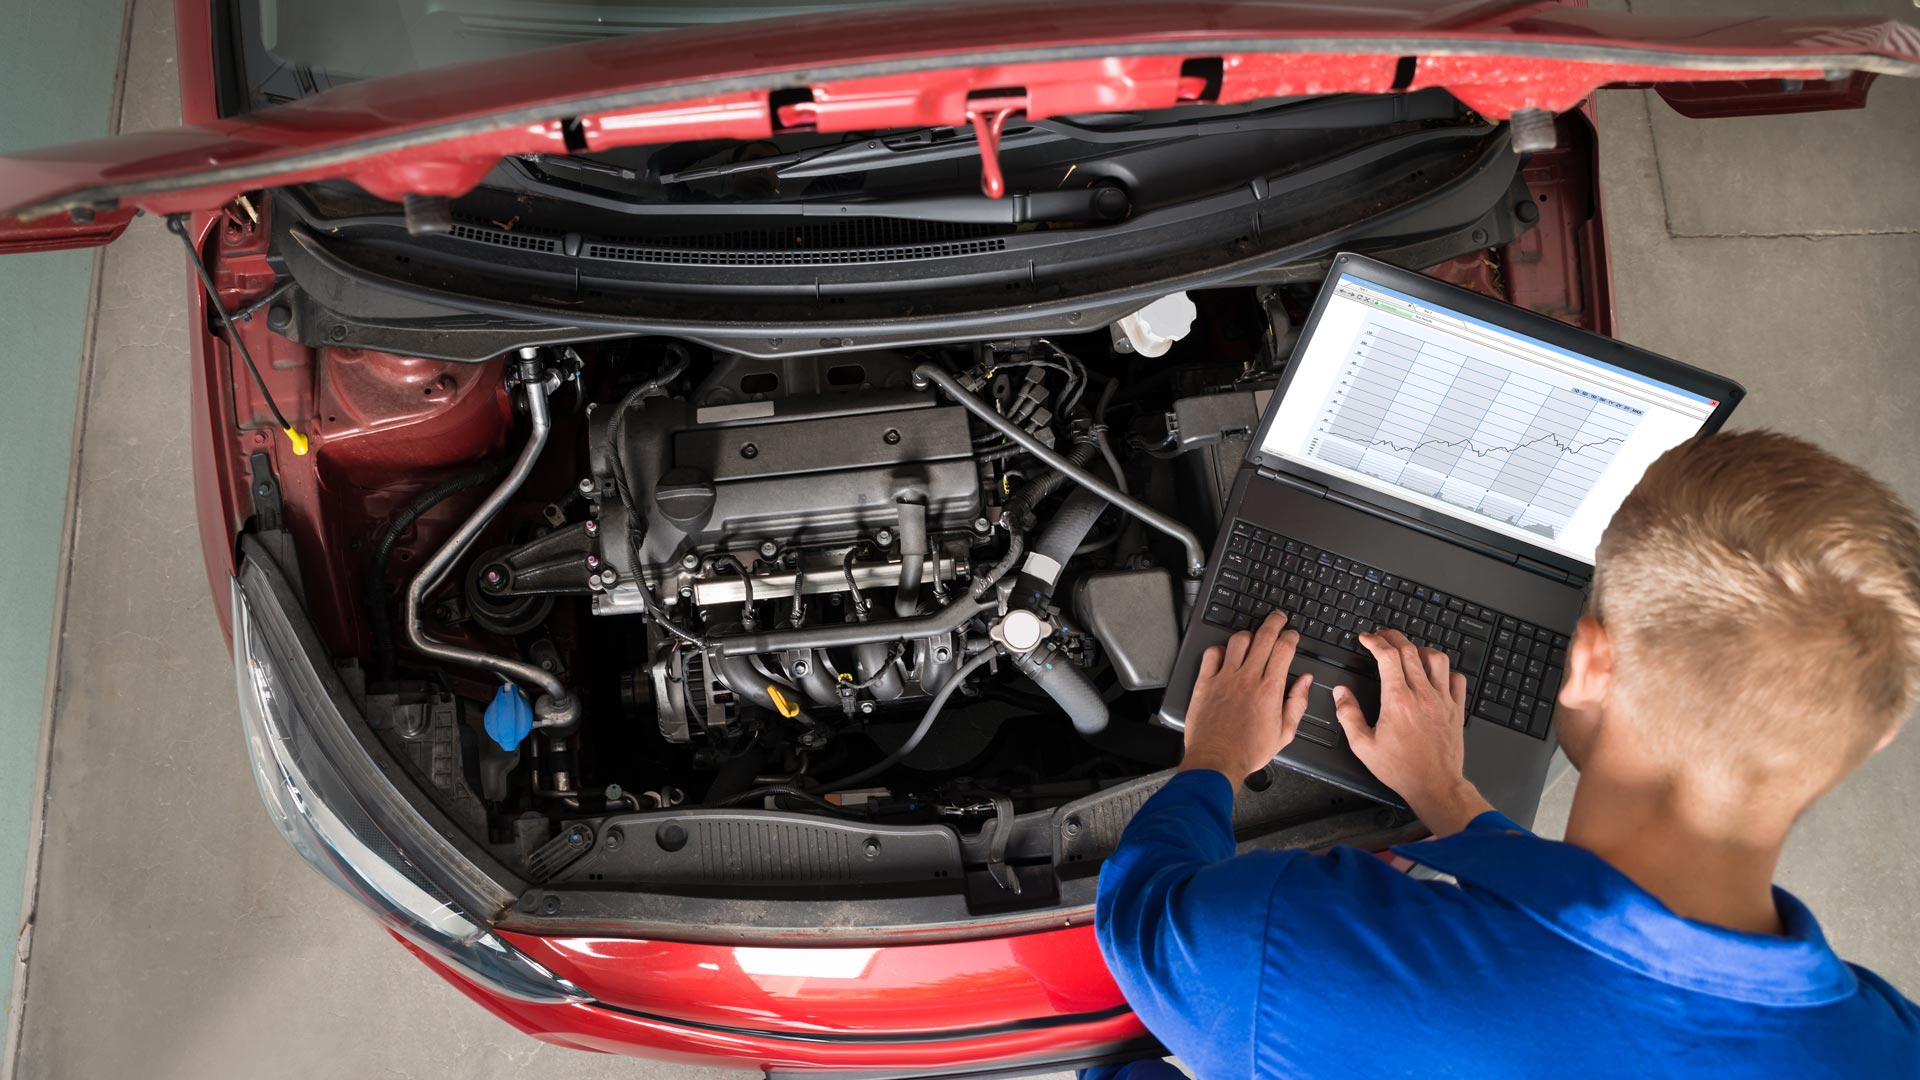 engine diagnostics being carried out using a laptop